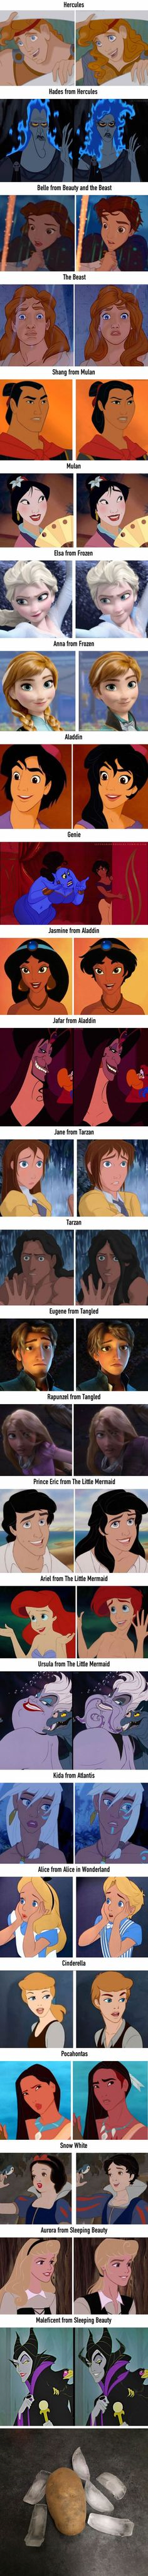 26 gender-bending Disney characters^ theses are brilliantly done, all of these all exactly how I believe these characters would look like if they were the opposite gender